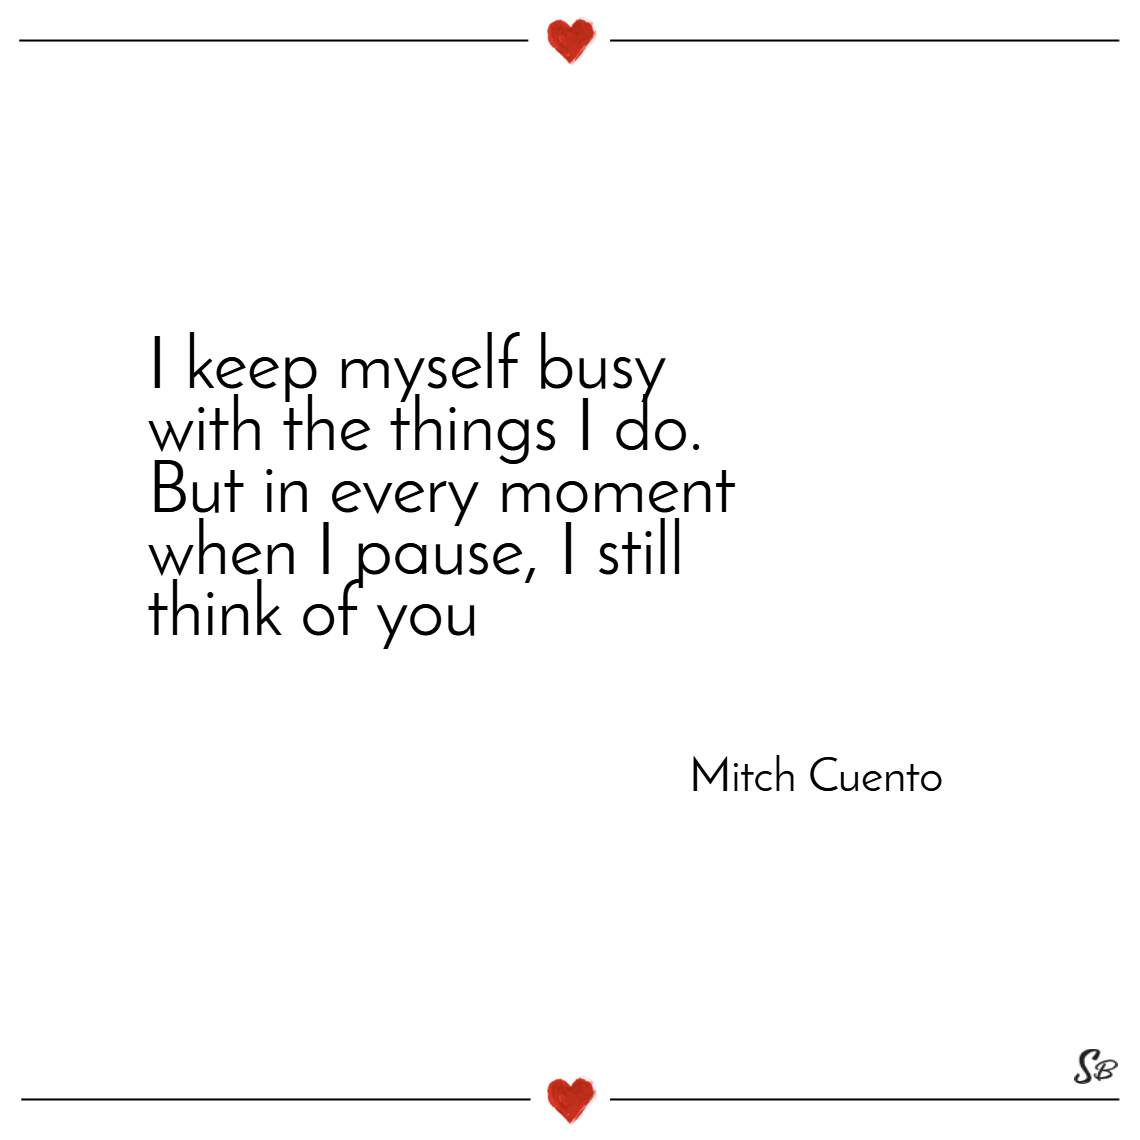 I keep myself busy with the things i do. but in every moment when i pause, i still think of you. – mitch cuento